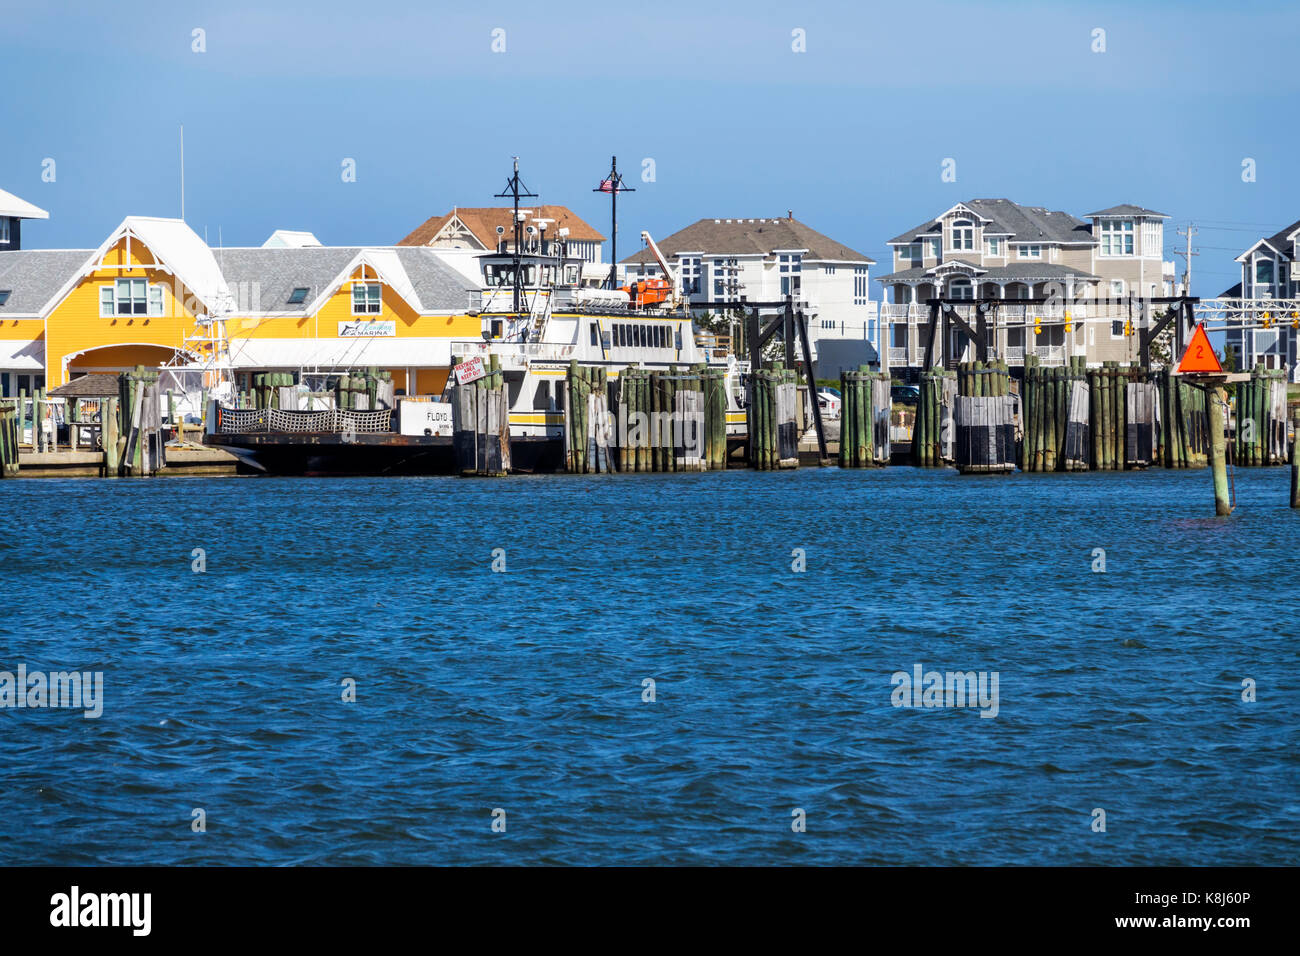 Outer Banks North Carolina NC Pamlico Sound Hatteras Island waterfront mansions houses - Stock Image